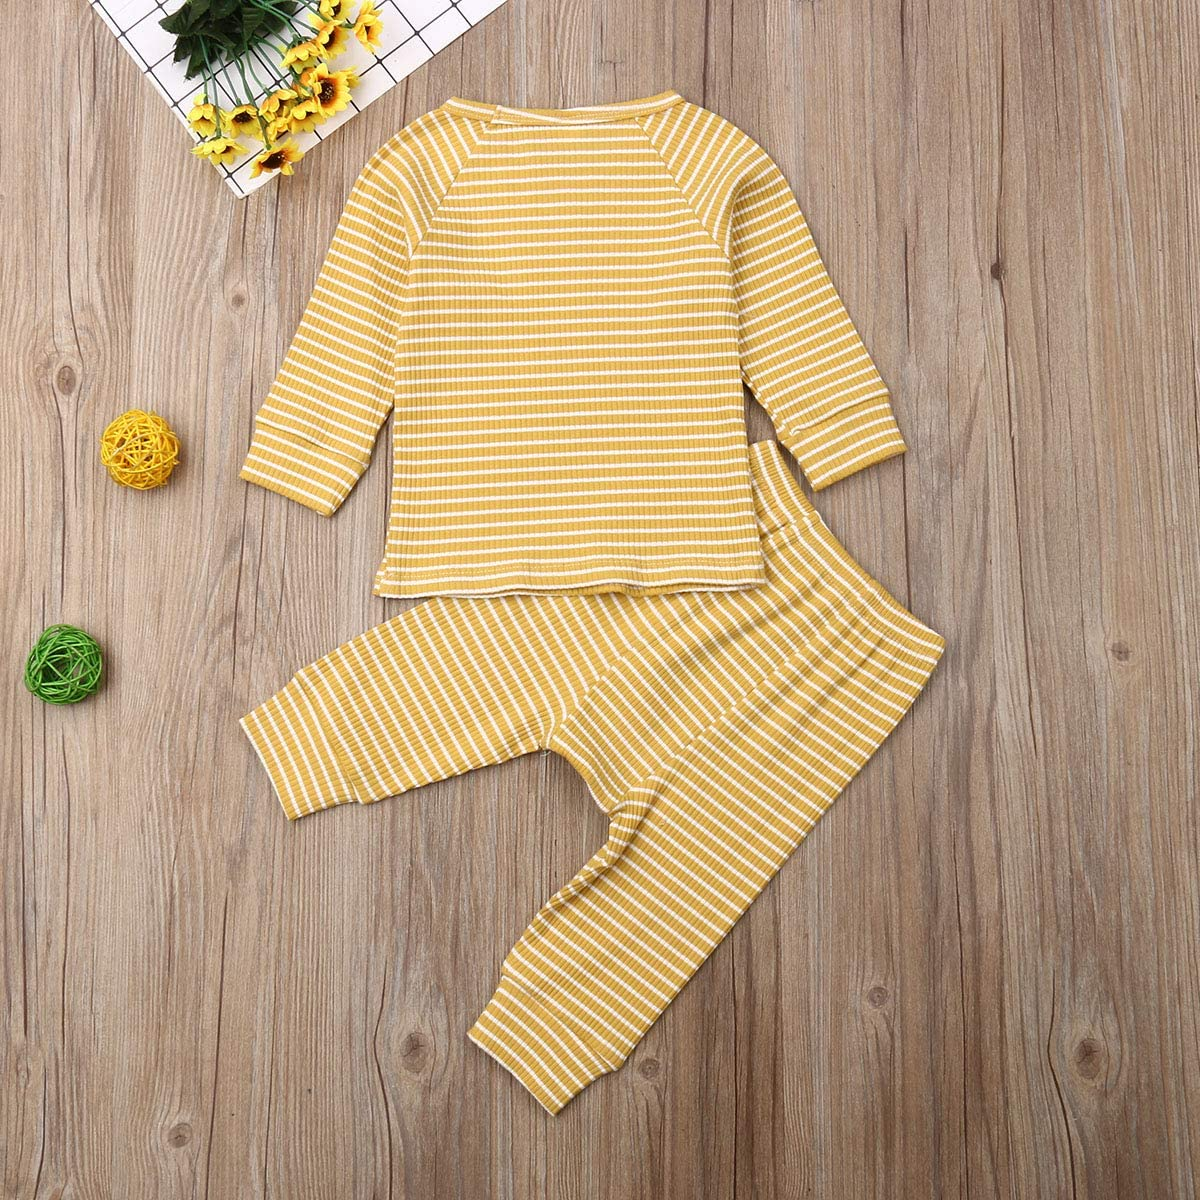 Newborn Baby Clothes Set Baby Boy Girl Romper Floral Pants Set Long Sleeve Jumpsuit Infant Halloween Outfit